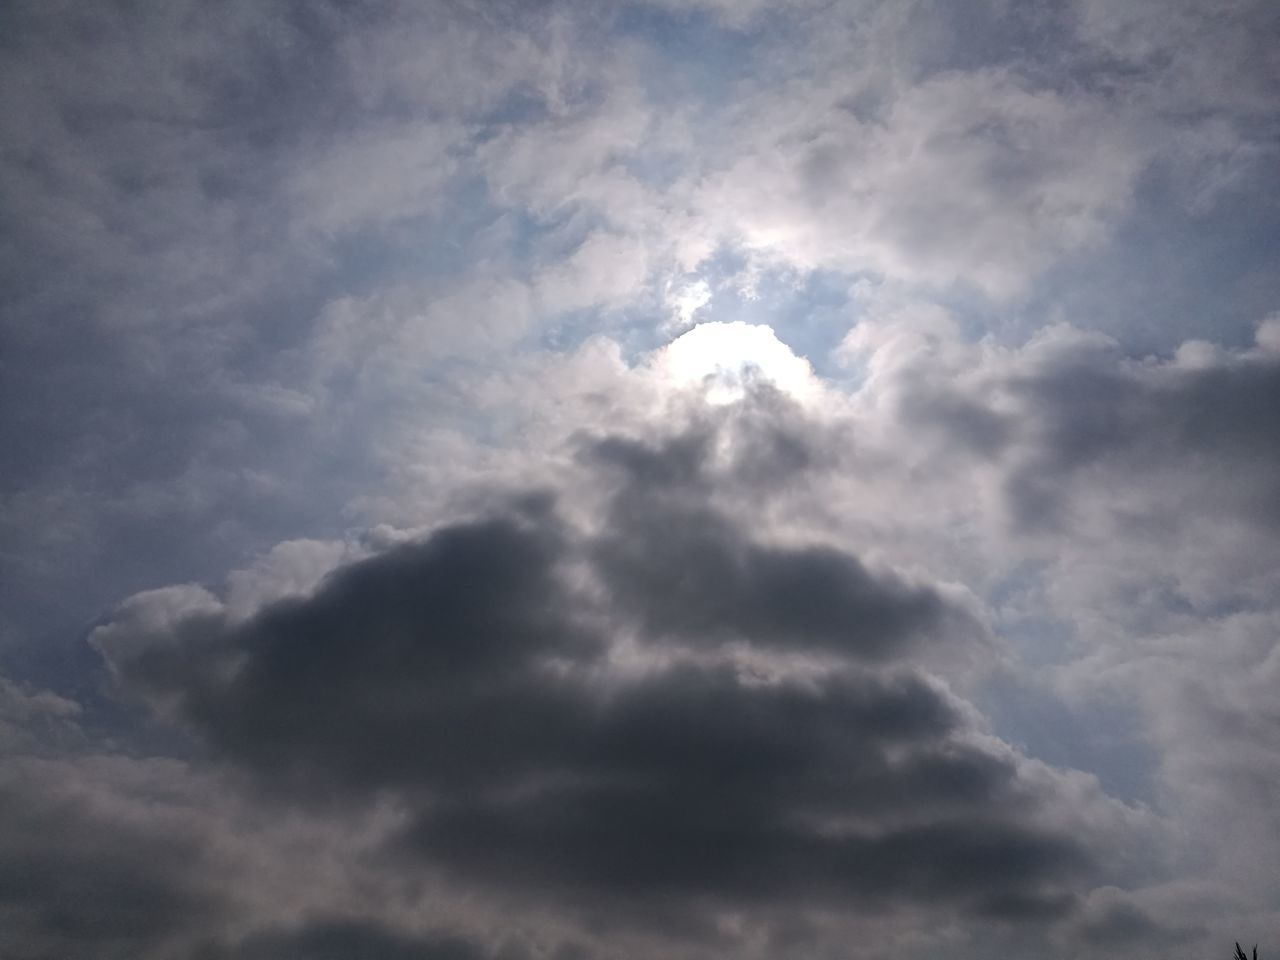 cloud - sky, nature, sky, beauty in nature, low angle view, scenics, sky only, tranquility, no people, outdoors, day, backgrounds